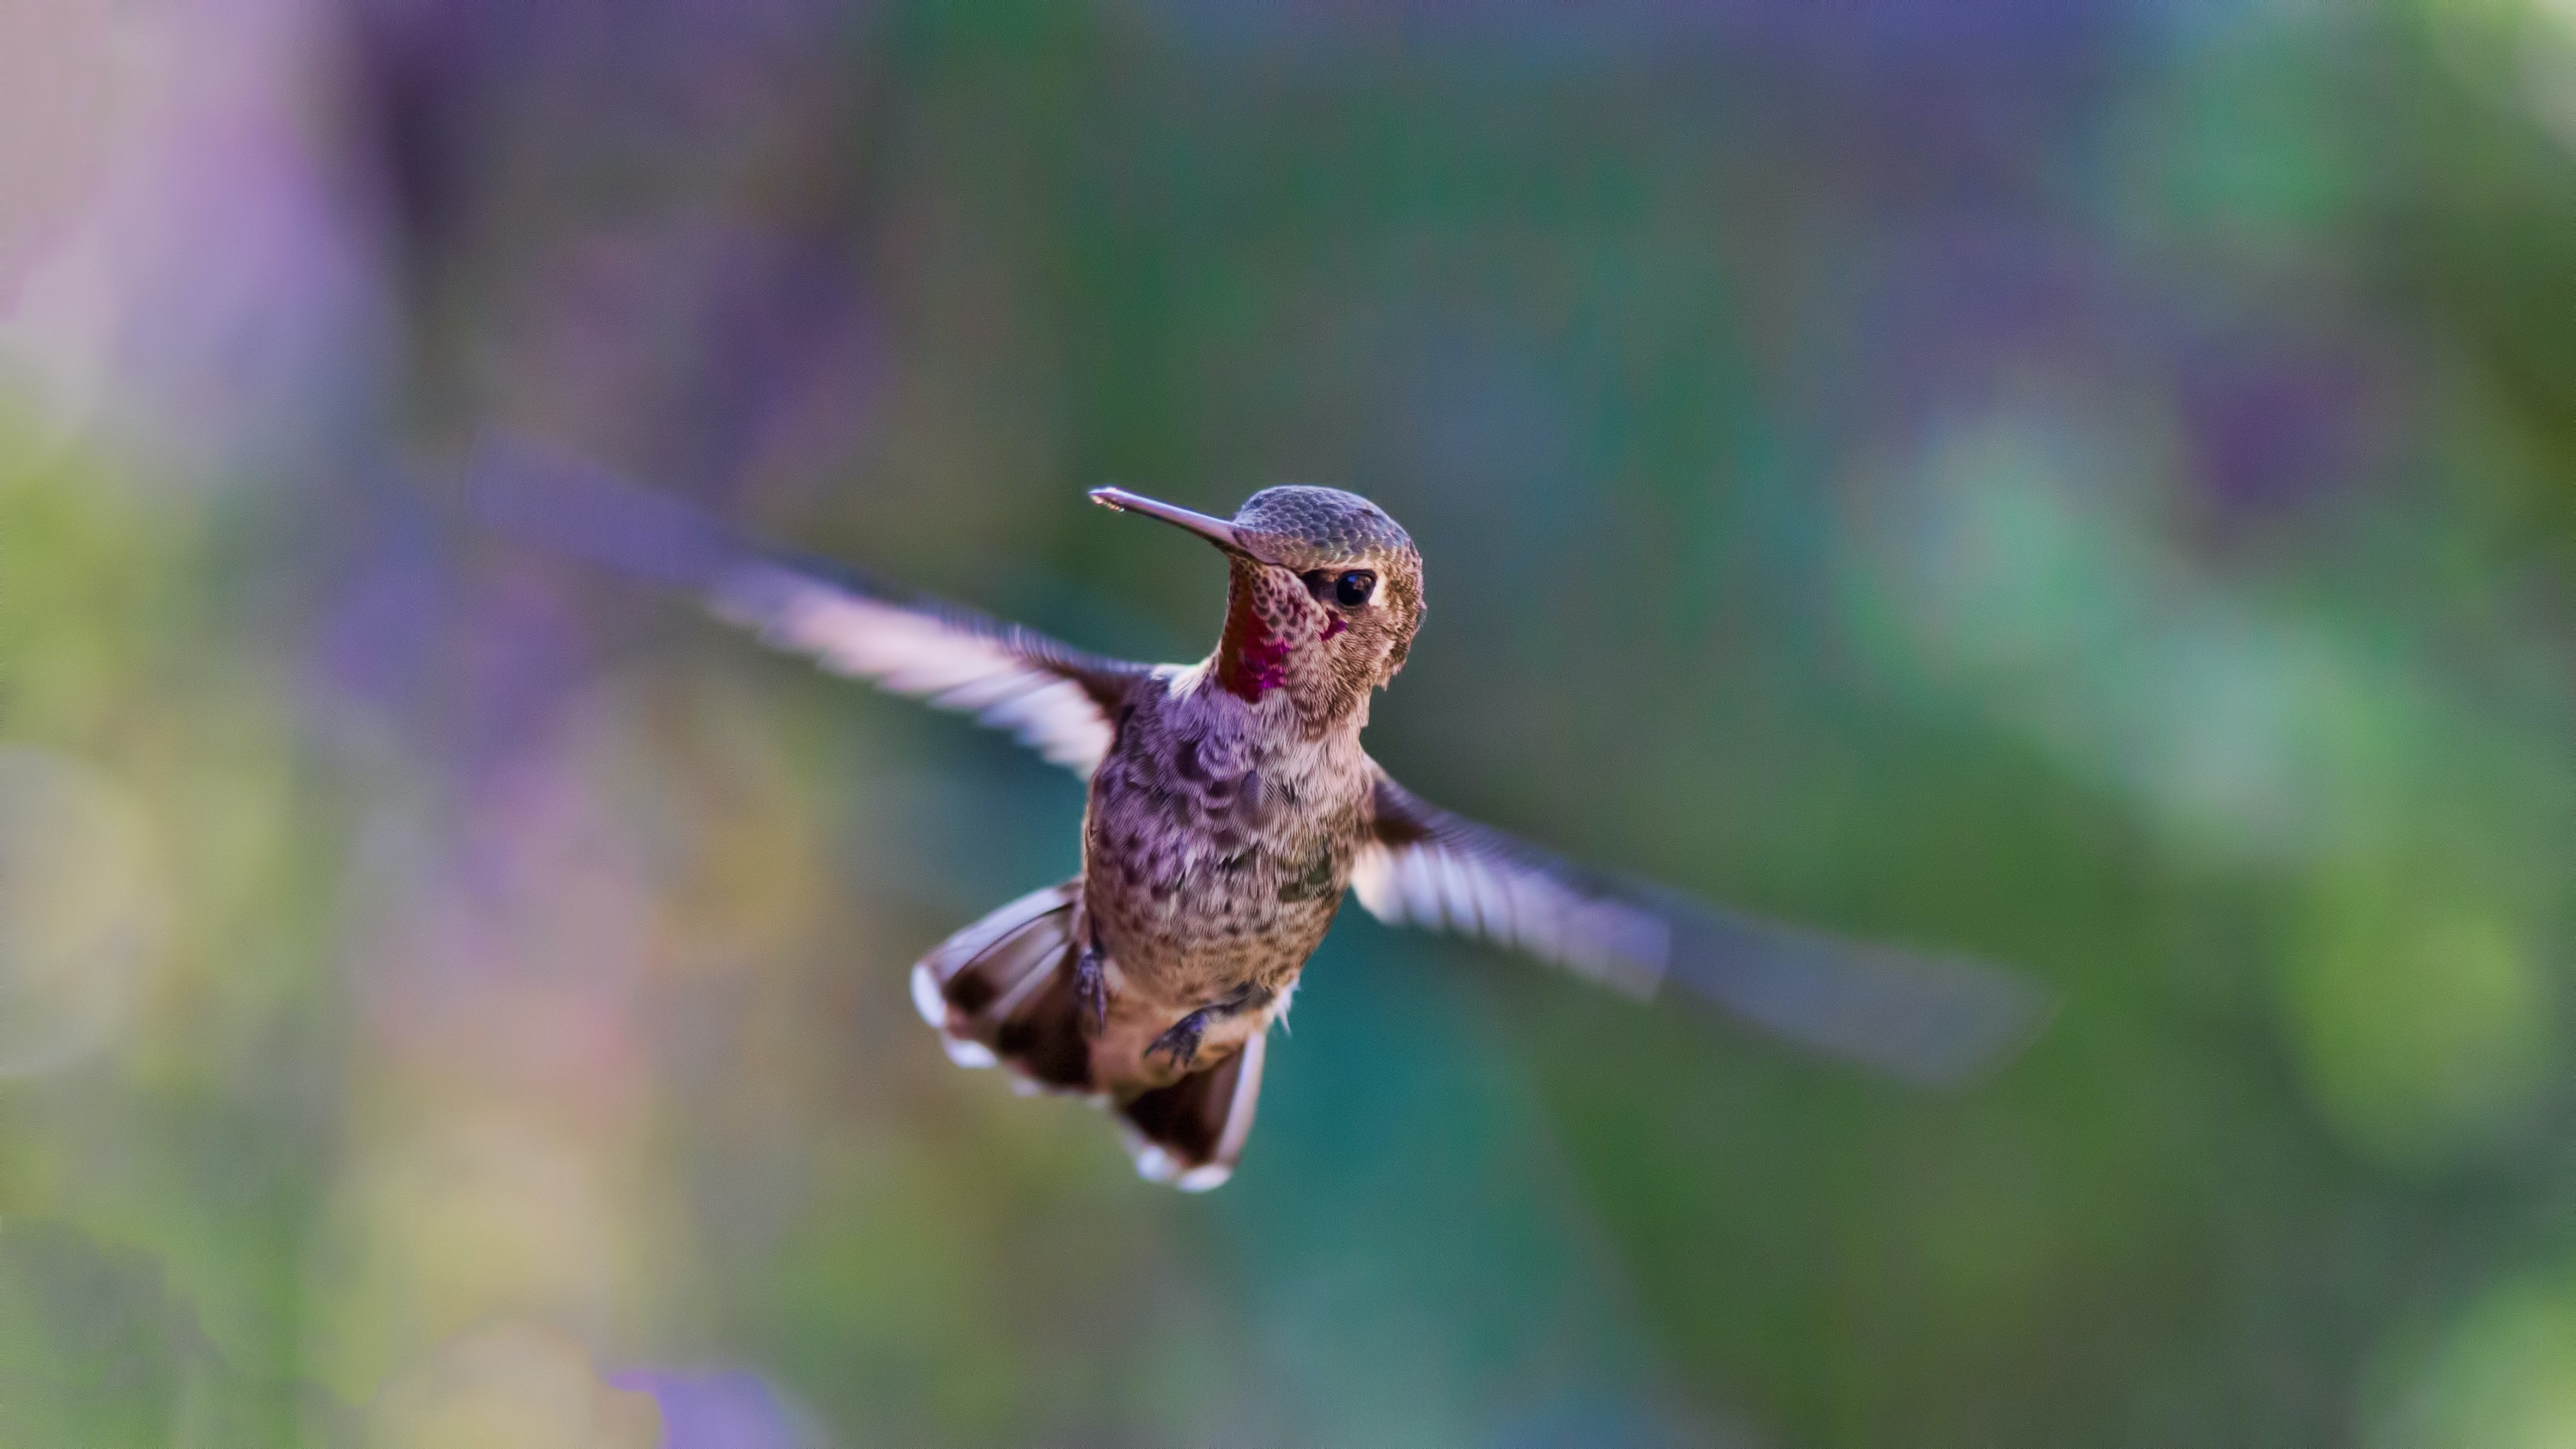 A close-up of light brown hummingbird fluttering its wings in flight